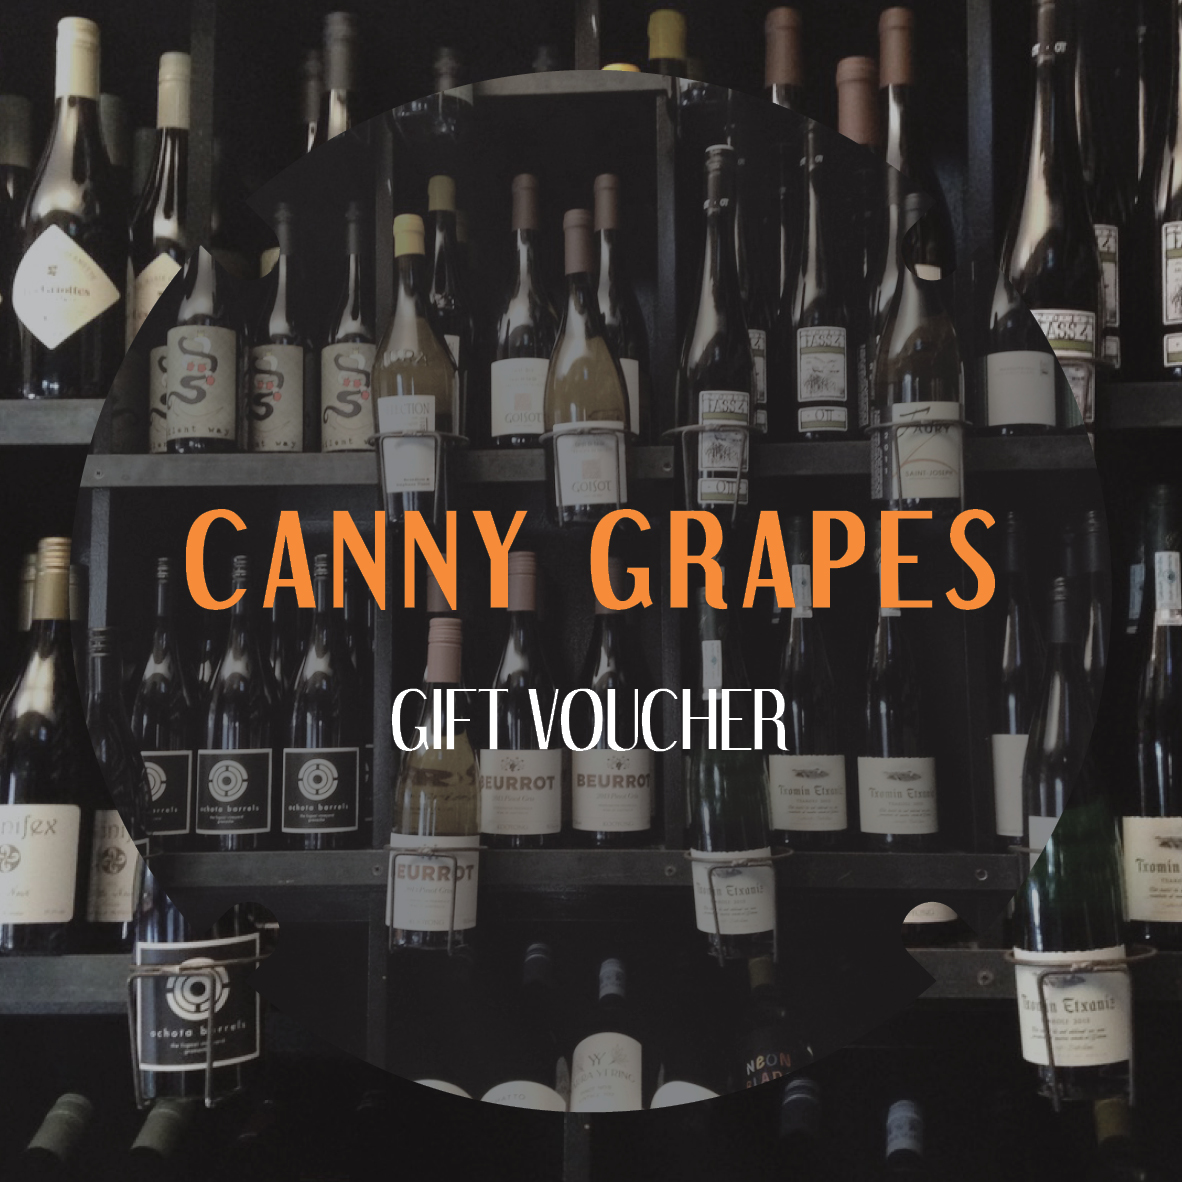 Canny Grapes Wine Tasting Gift voucher